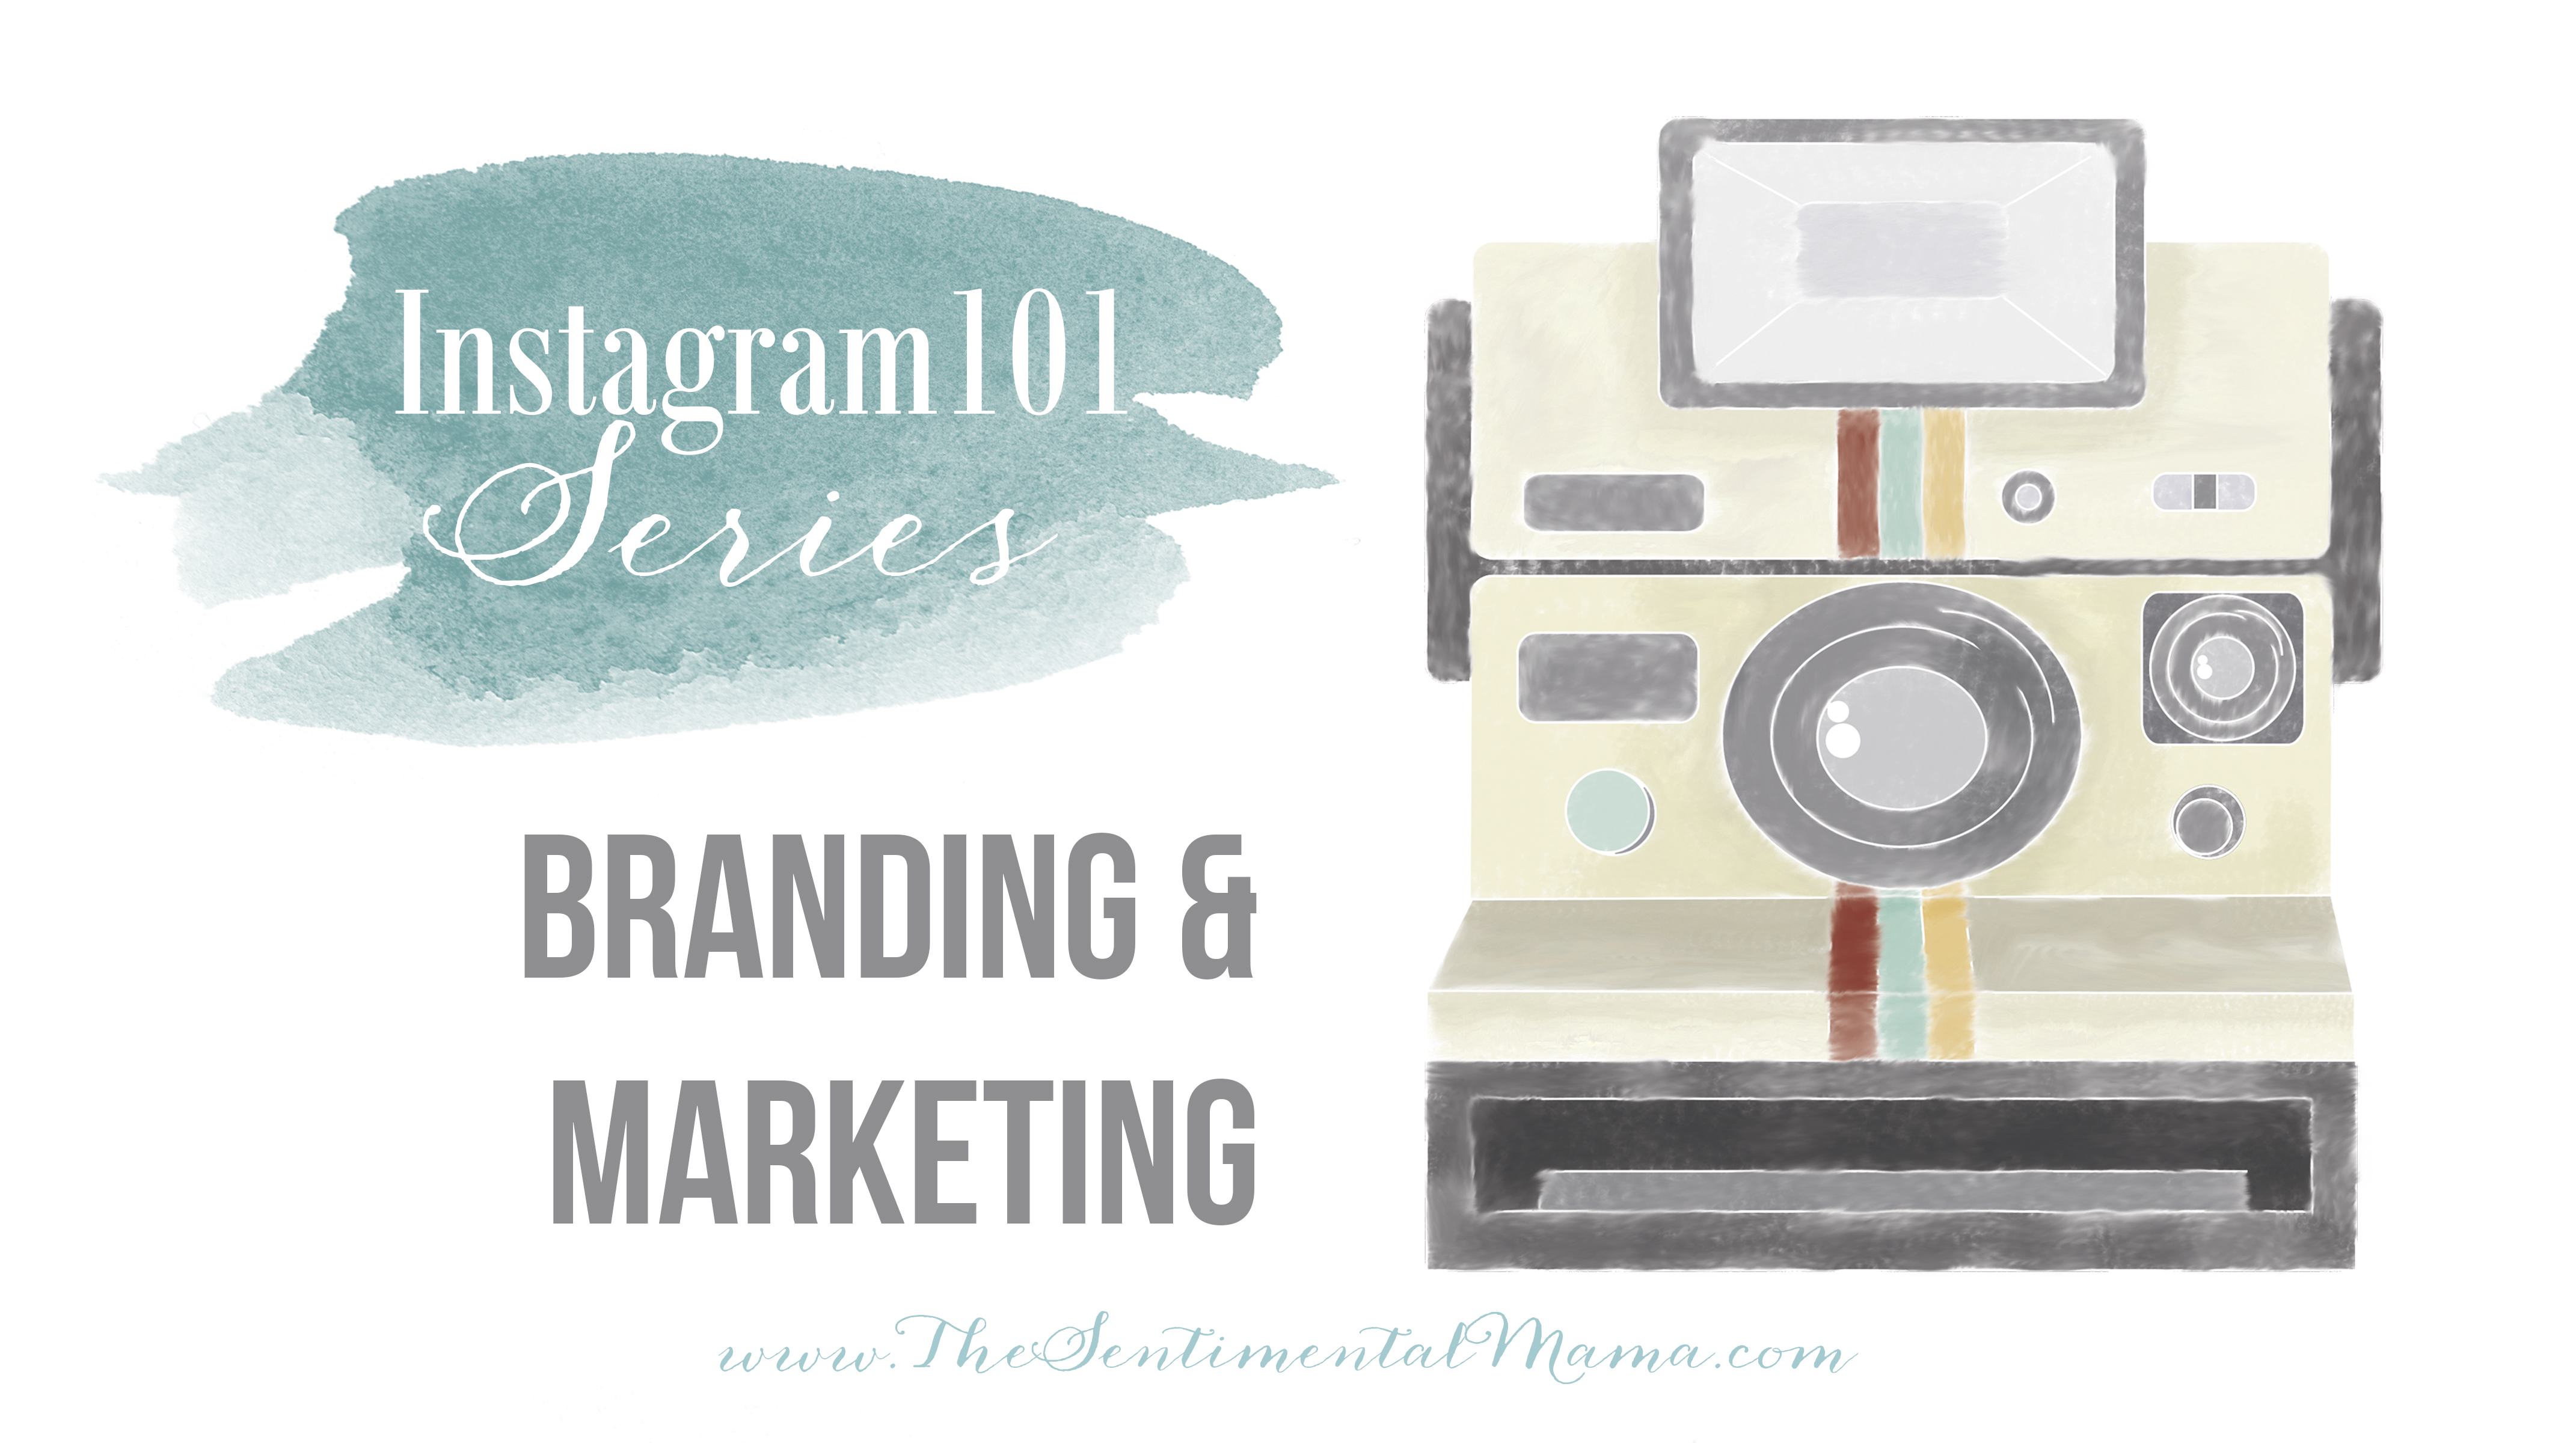 Instagram 101 Branding & Marketing